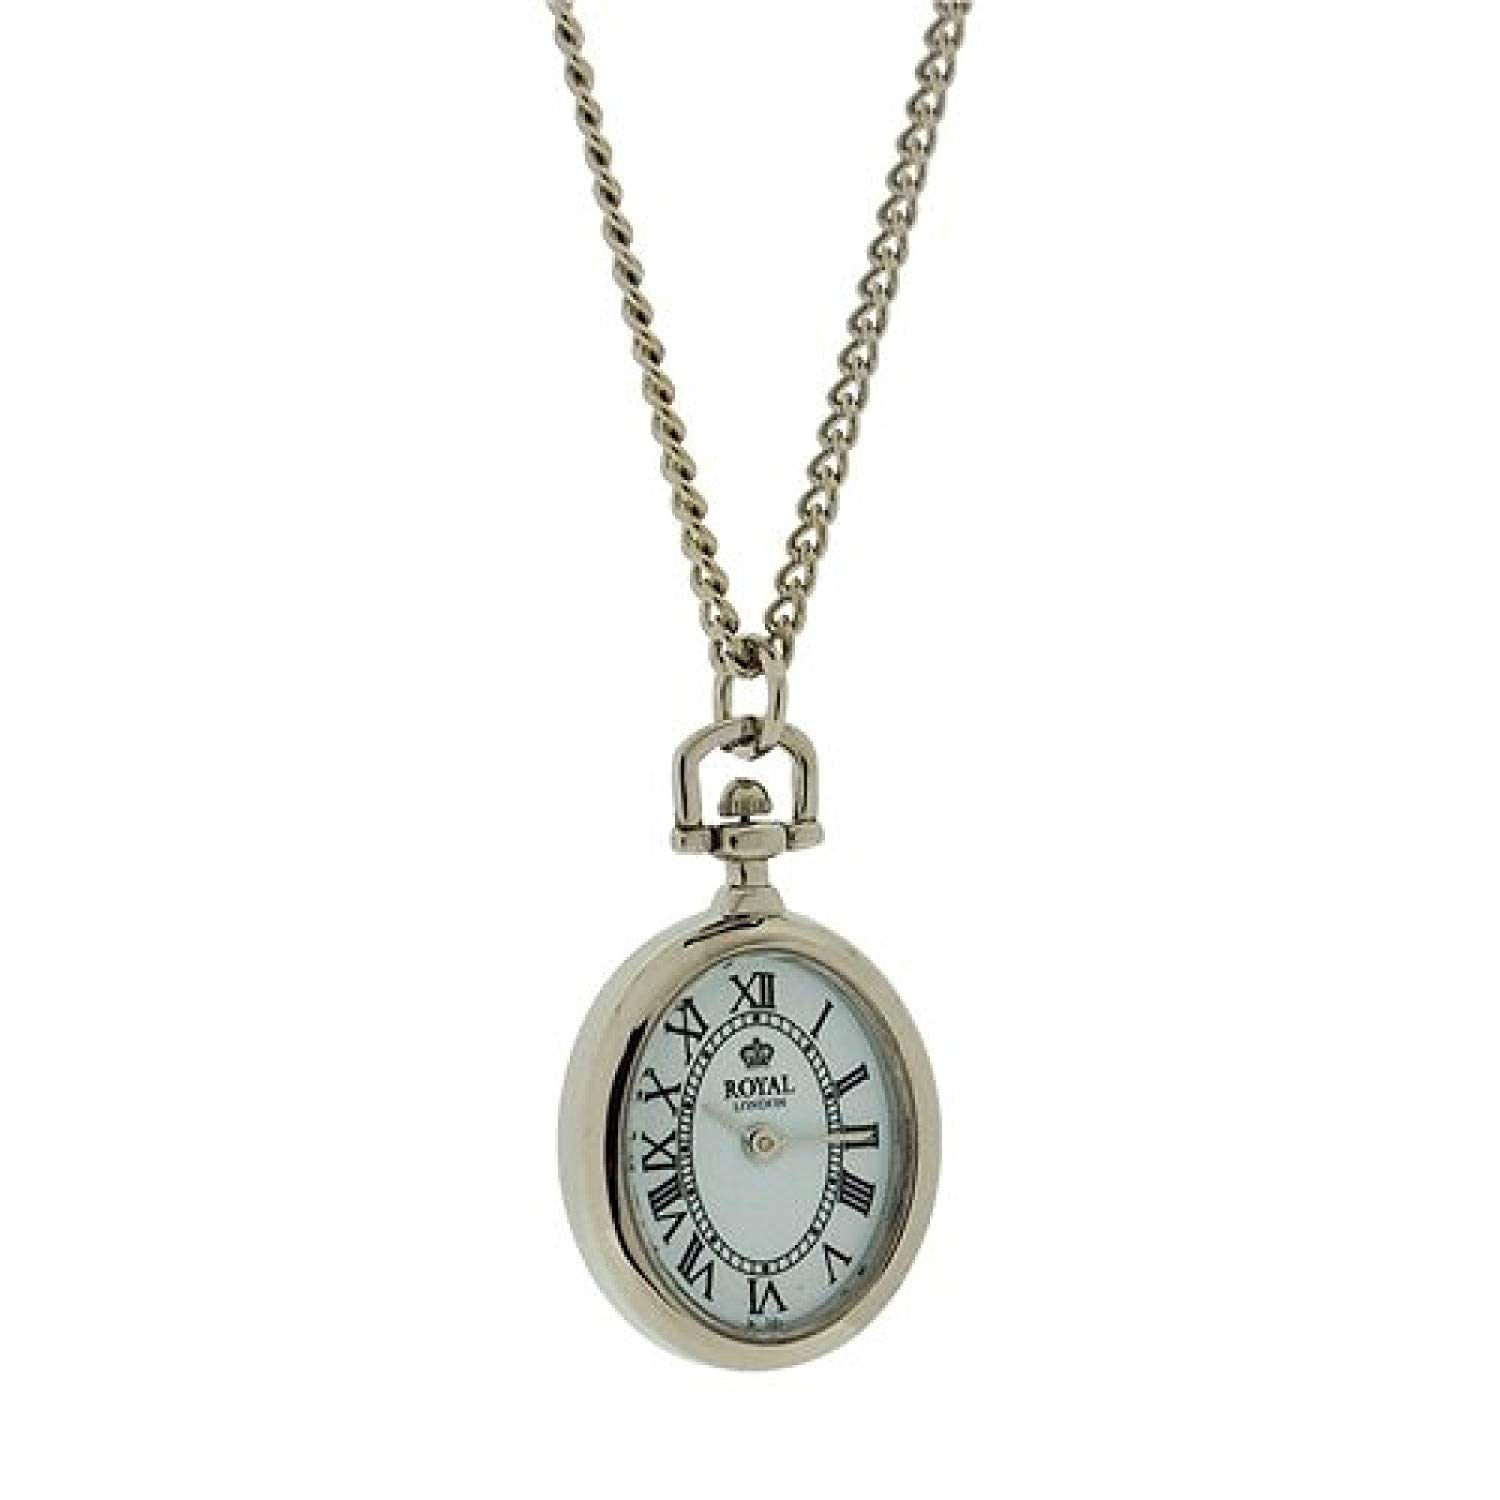 Royal London Ladies Open Faced Silvertone Pendant Watch Necklace On 26'' Chain